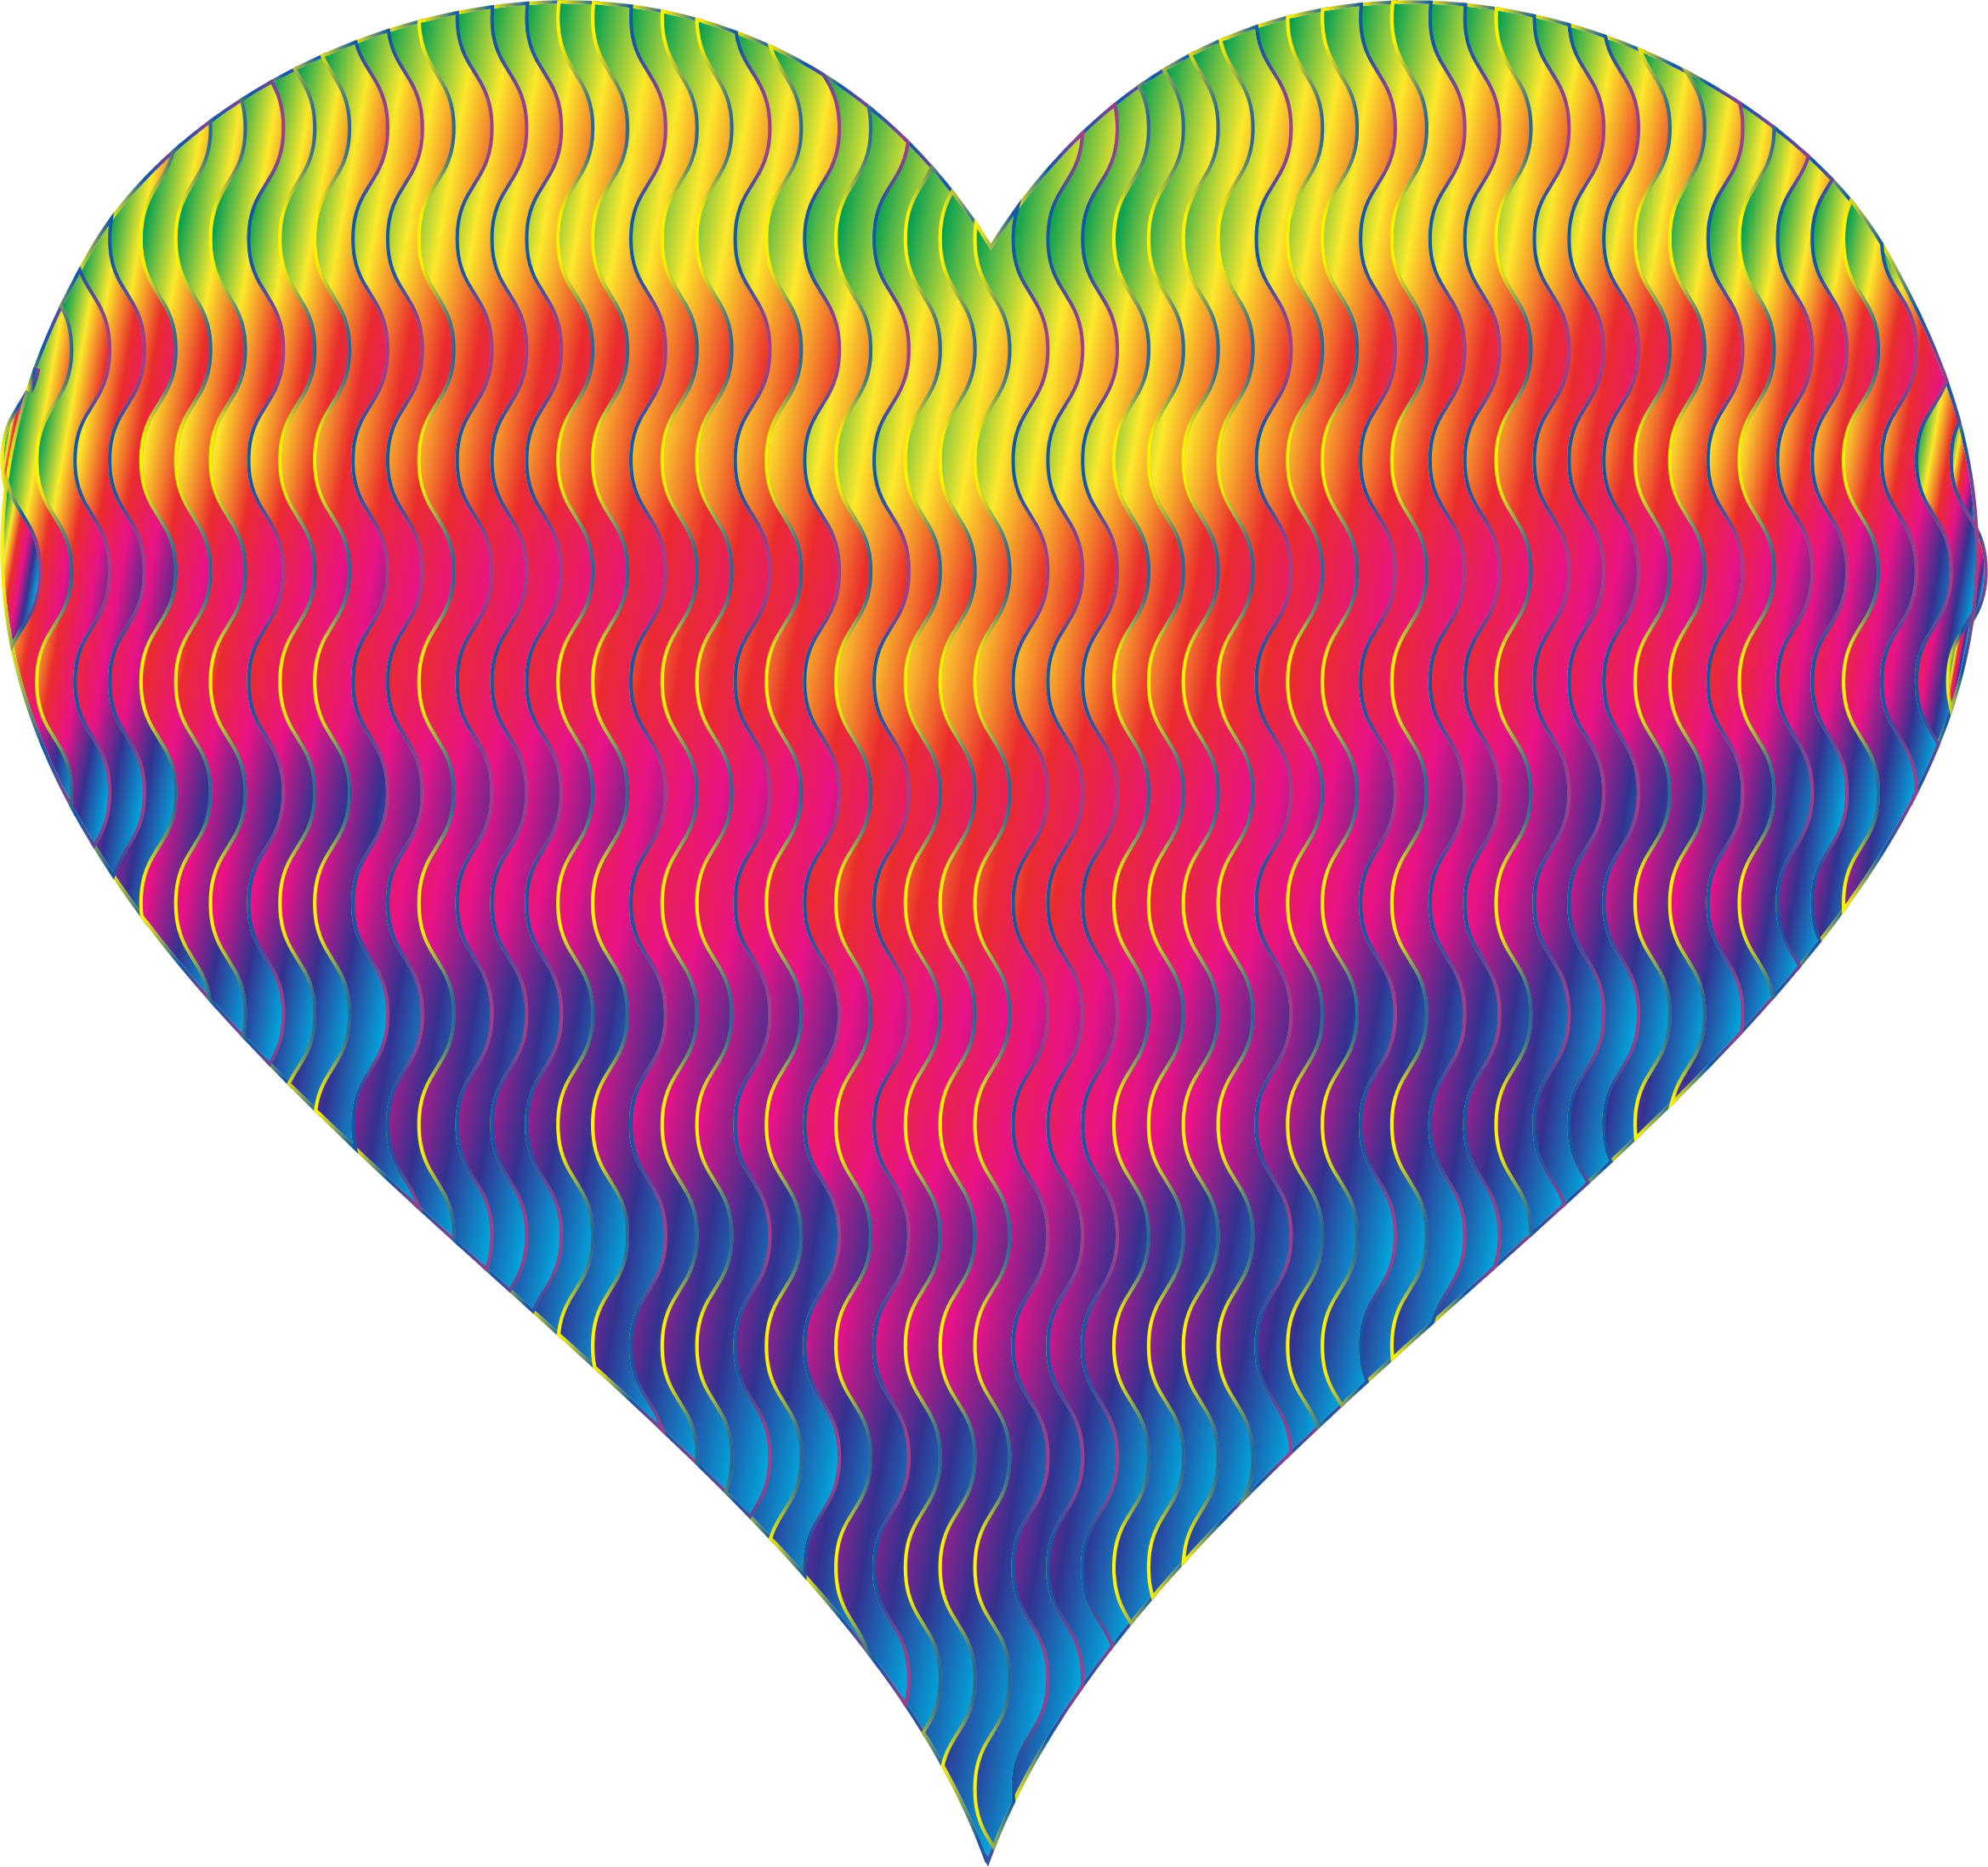 Colorful Wavy Heart 8 by GDJ